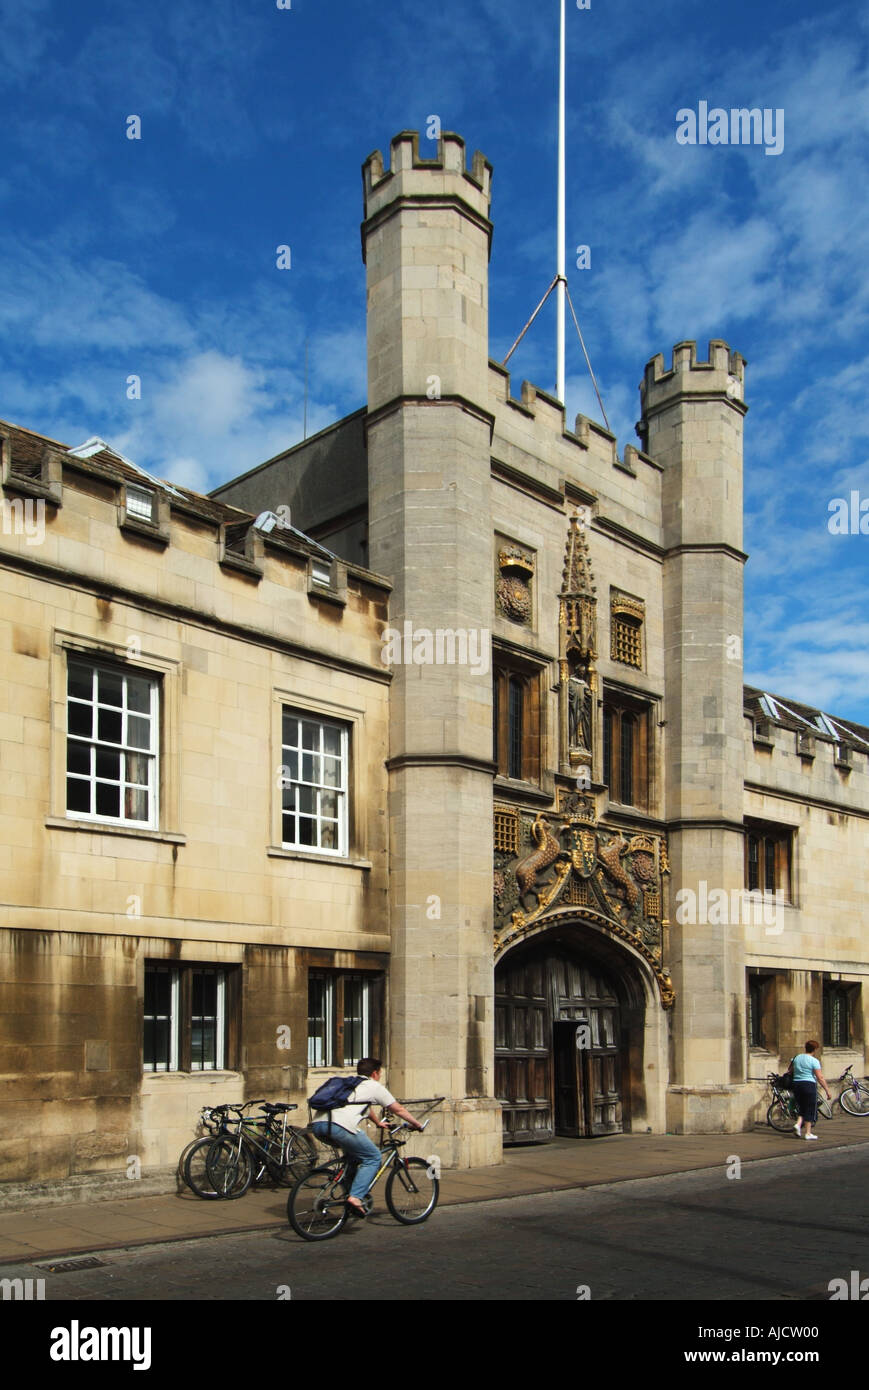 Christs College Cambridge University corrected for converging verticals - Stock Image